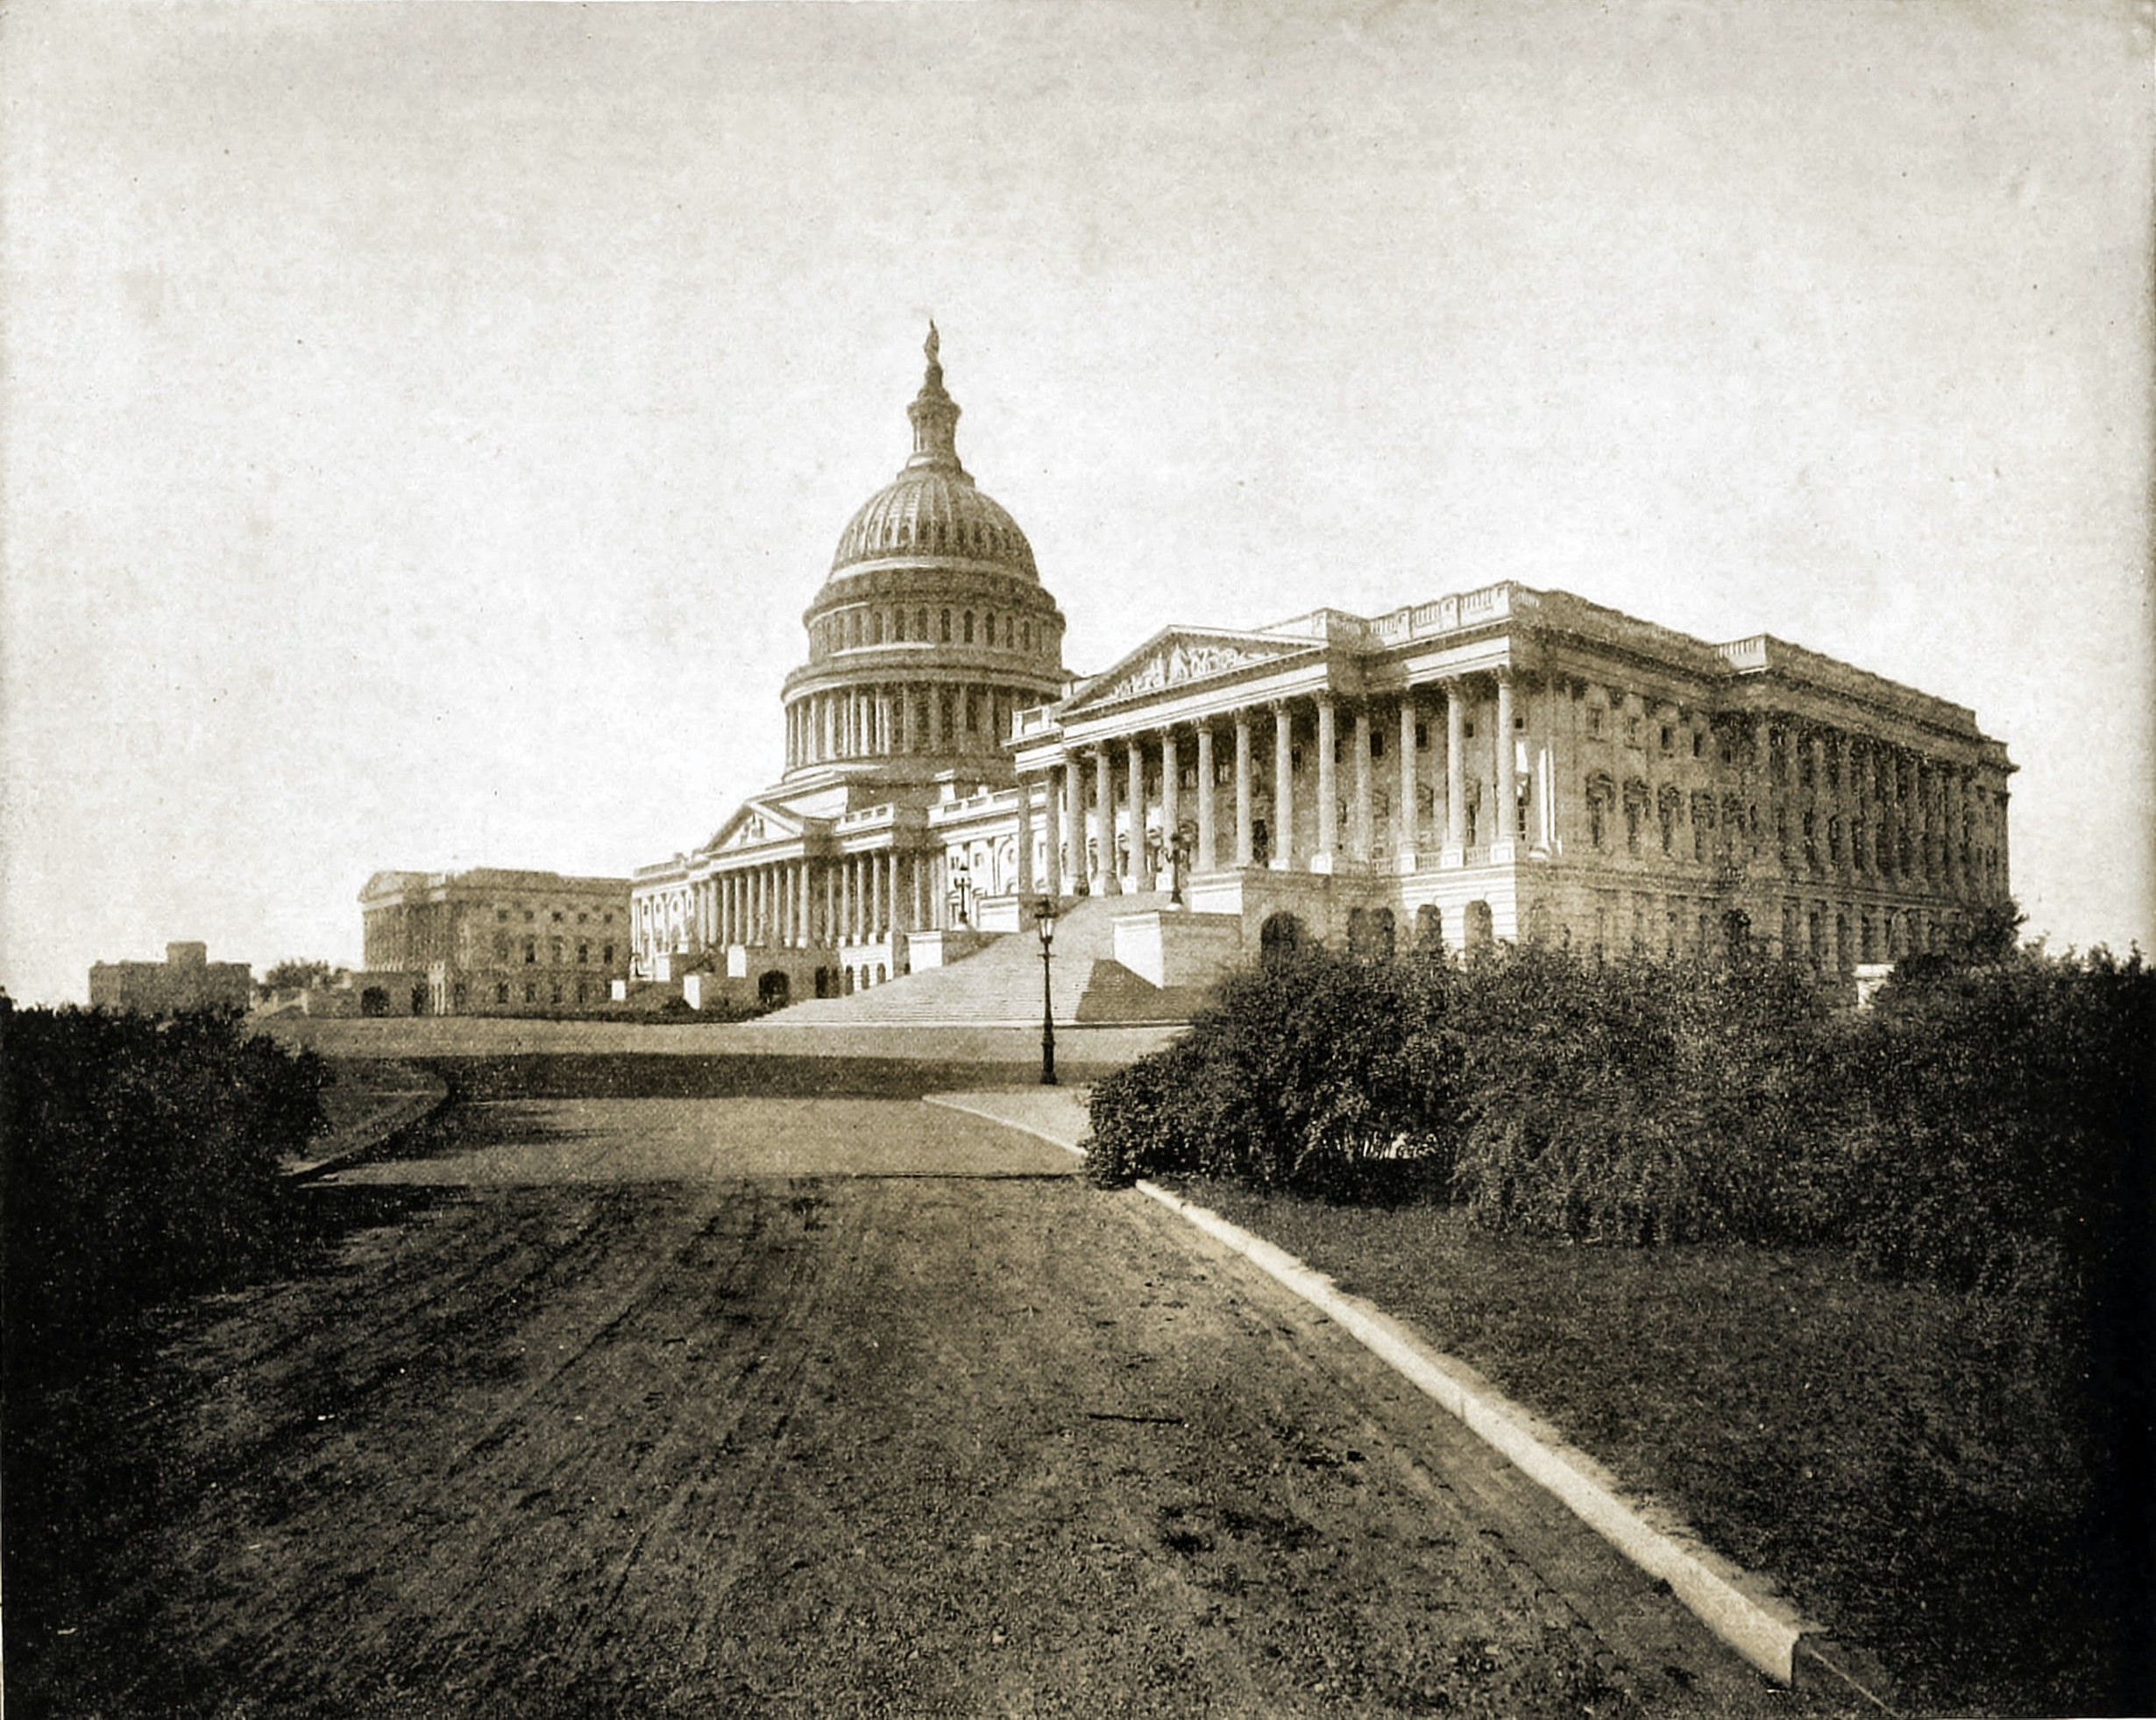 The Capitol Washington, D. C. USA about 1892